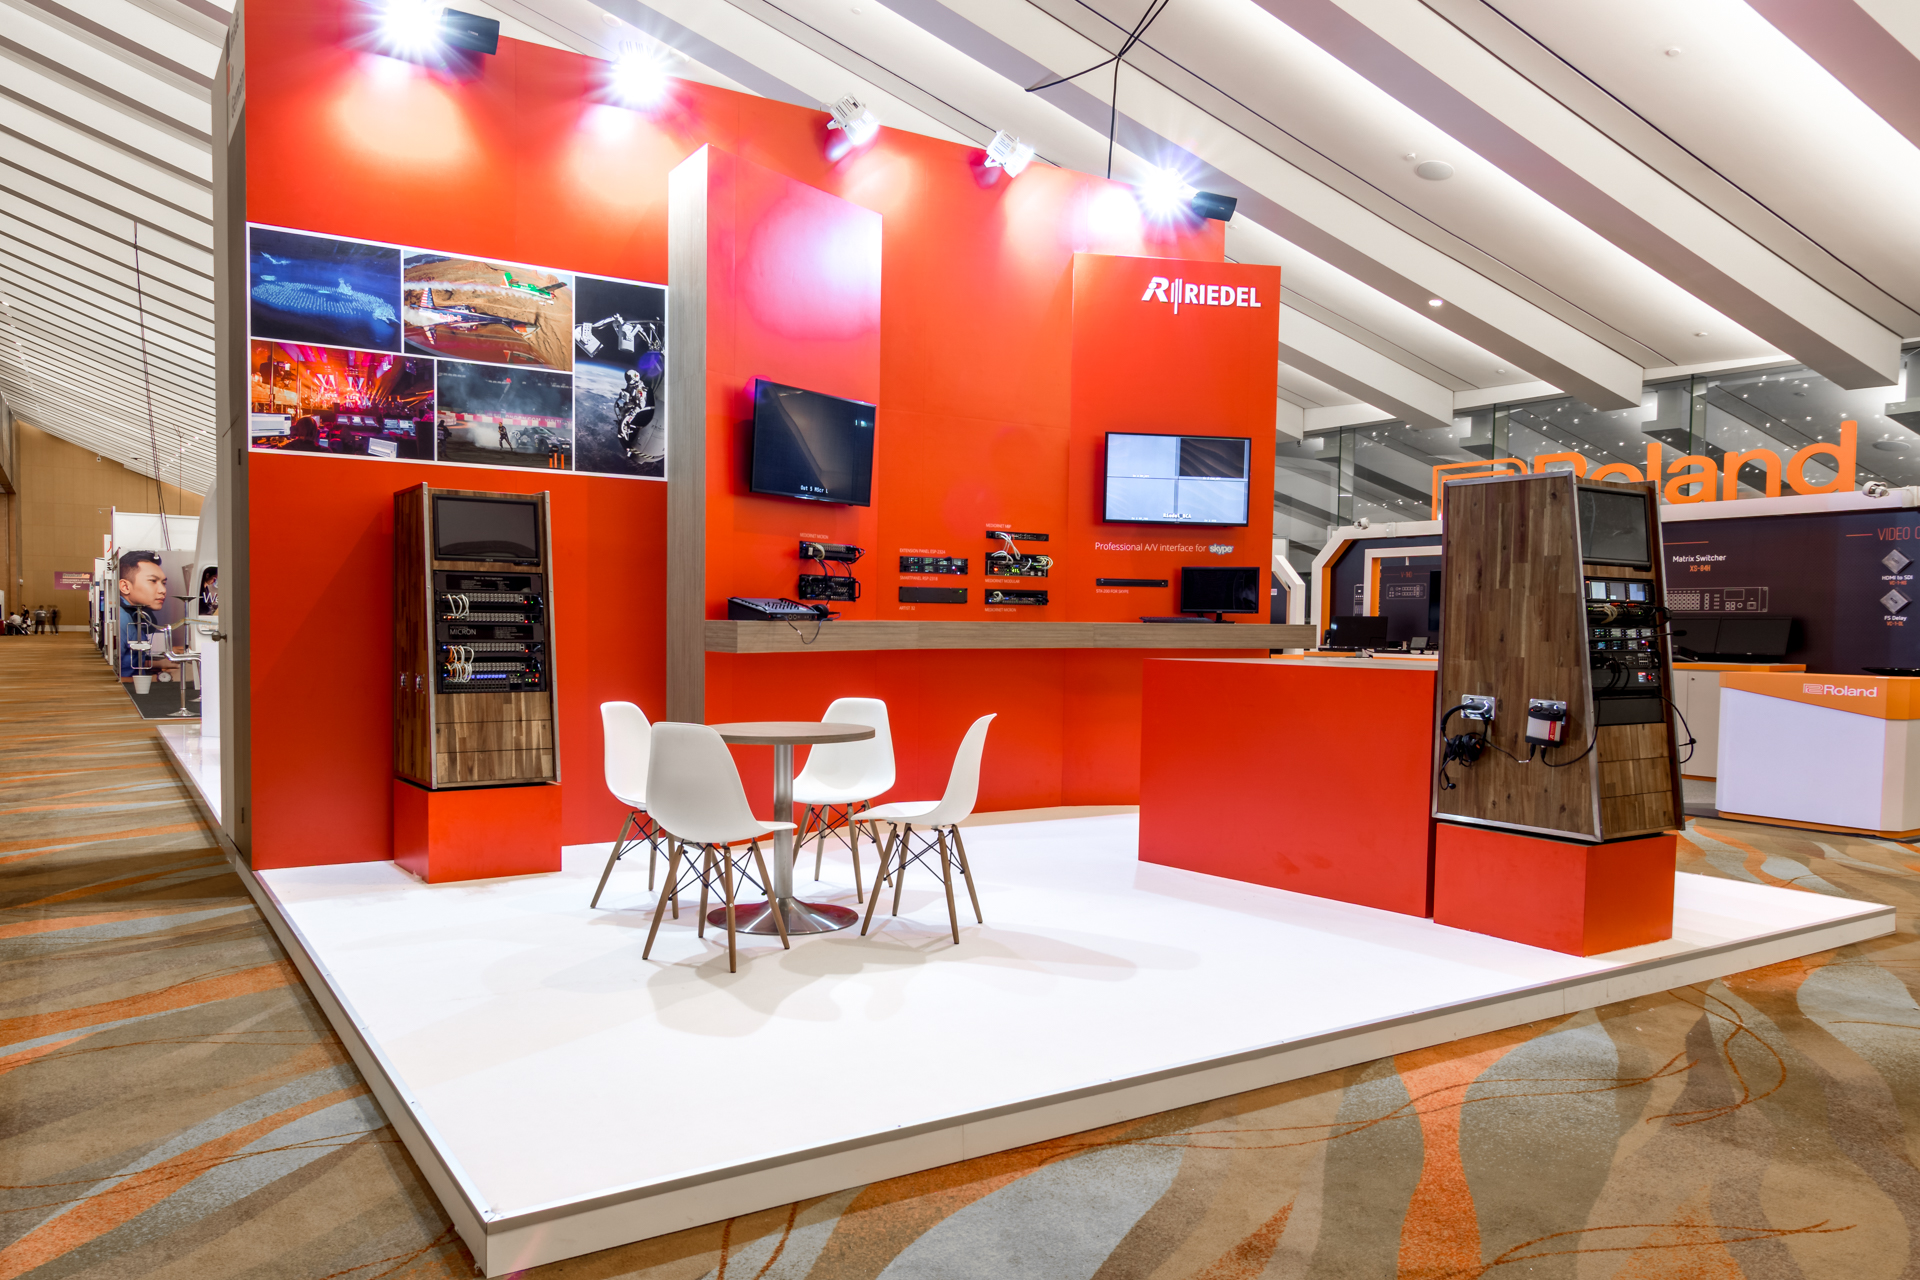 Exhibition Booth Design Singapore : Riedel exhibition booth punktlandung events exhibitions